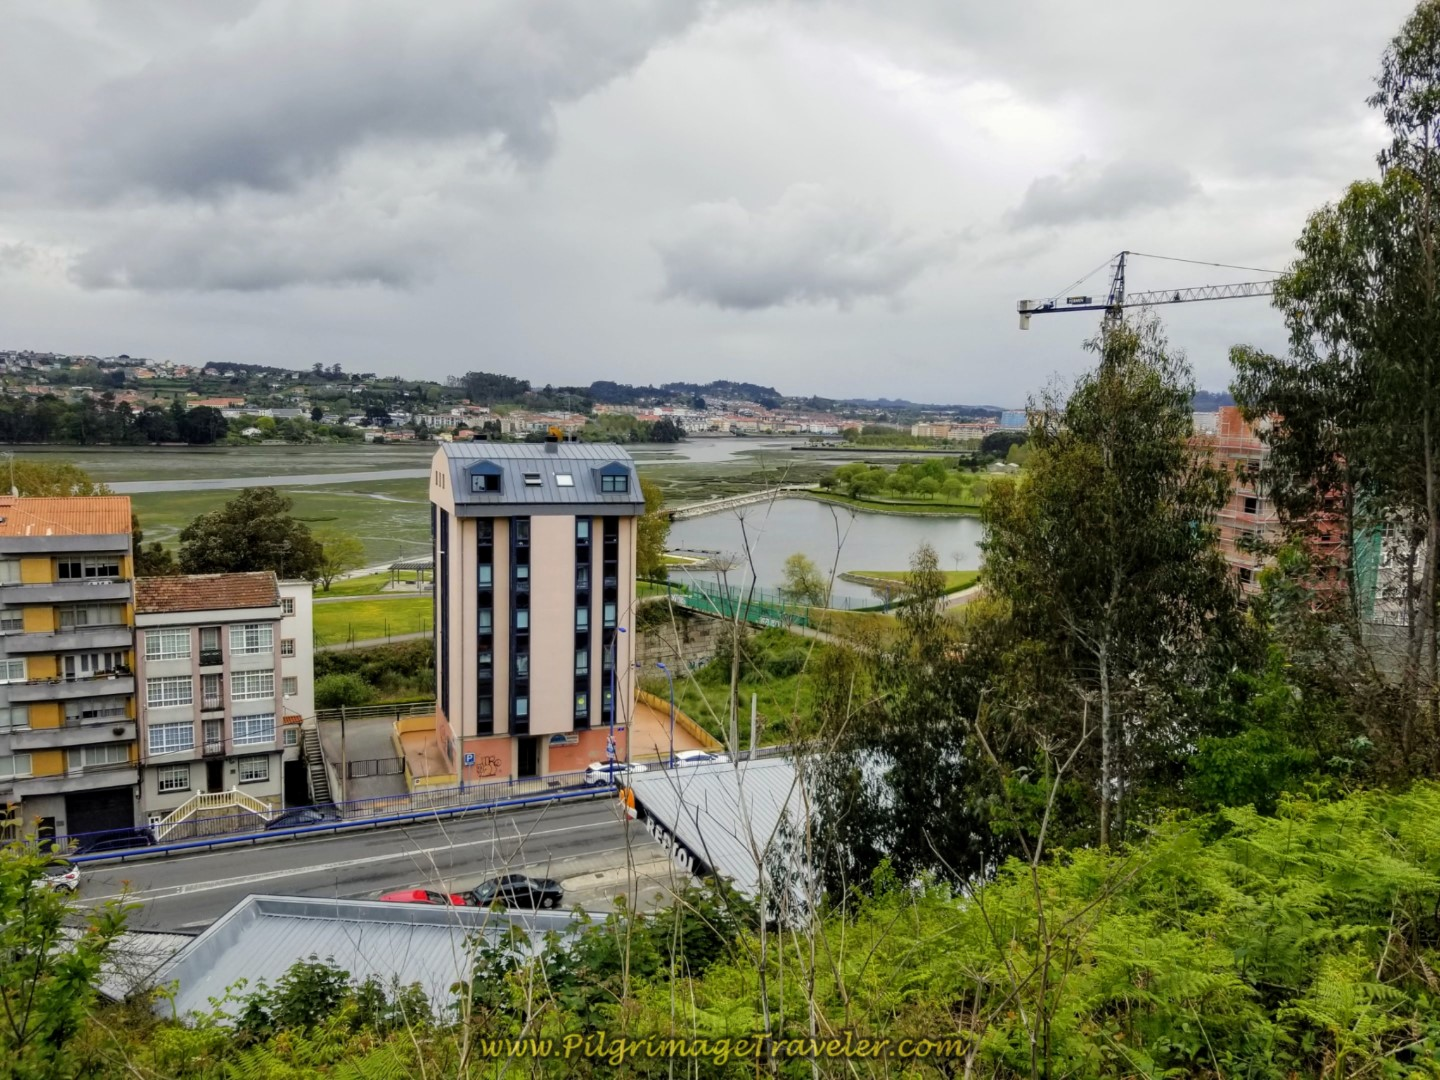 More Views of the Ria da Coruña Below on day one of the La Coruña Arm of the Camino Inglés